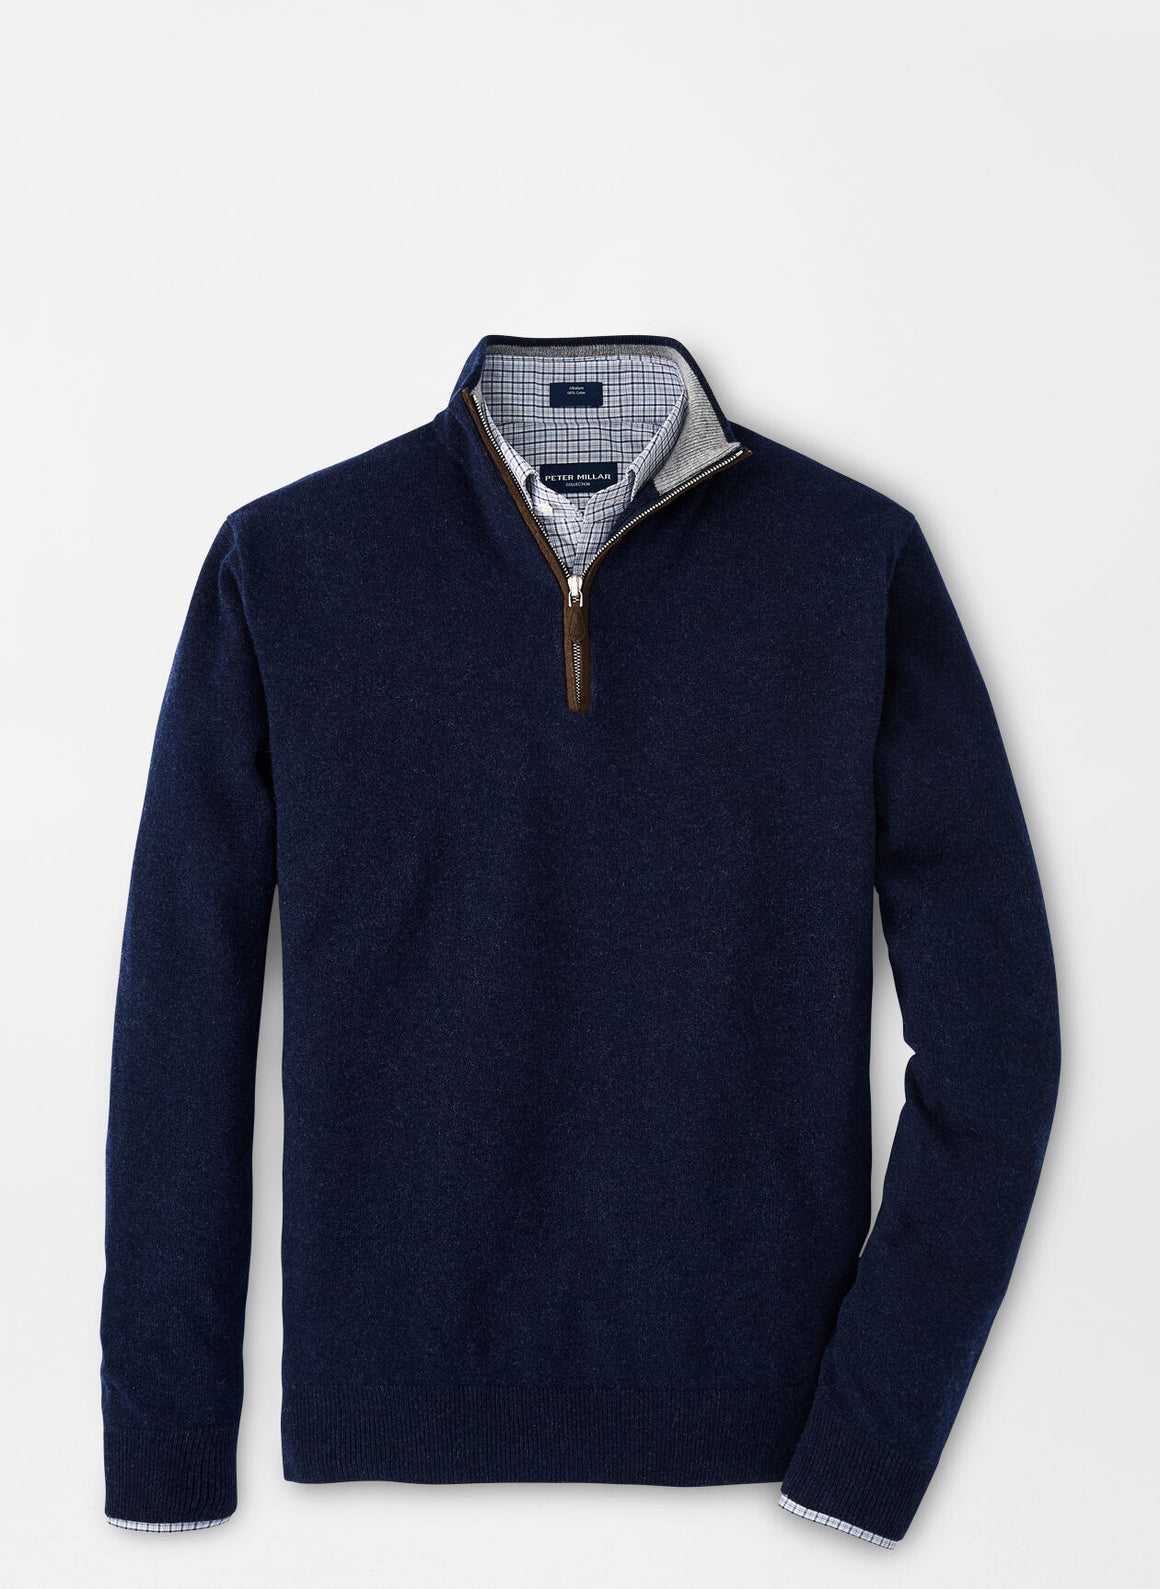 Artisan Crafted Cashmere Quarter Zip